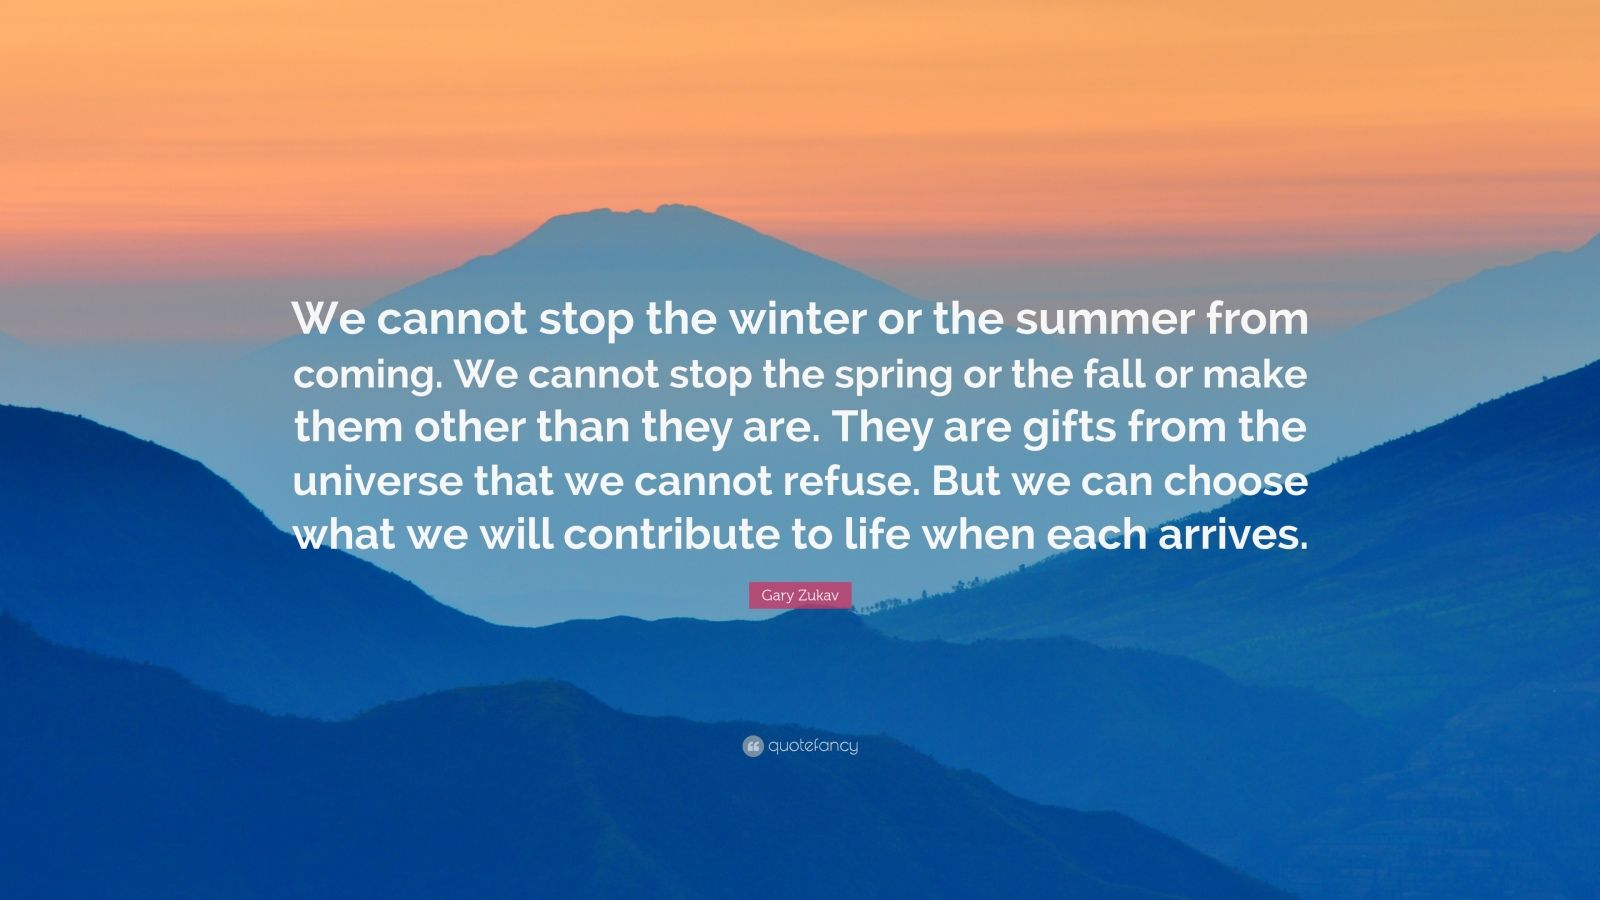 """Gary Zukav Quote: """"We cannot stop the winter or the summer from coming. We cannot stop the spring or the fall or make them other than they are. They are gifts from the universe that we cannot refuse. But we can choose what we will contribute to life when each arrives."""""""